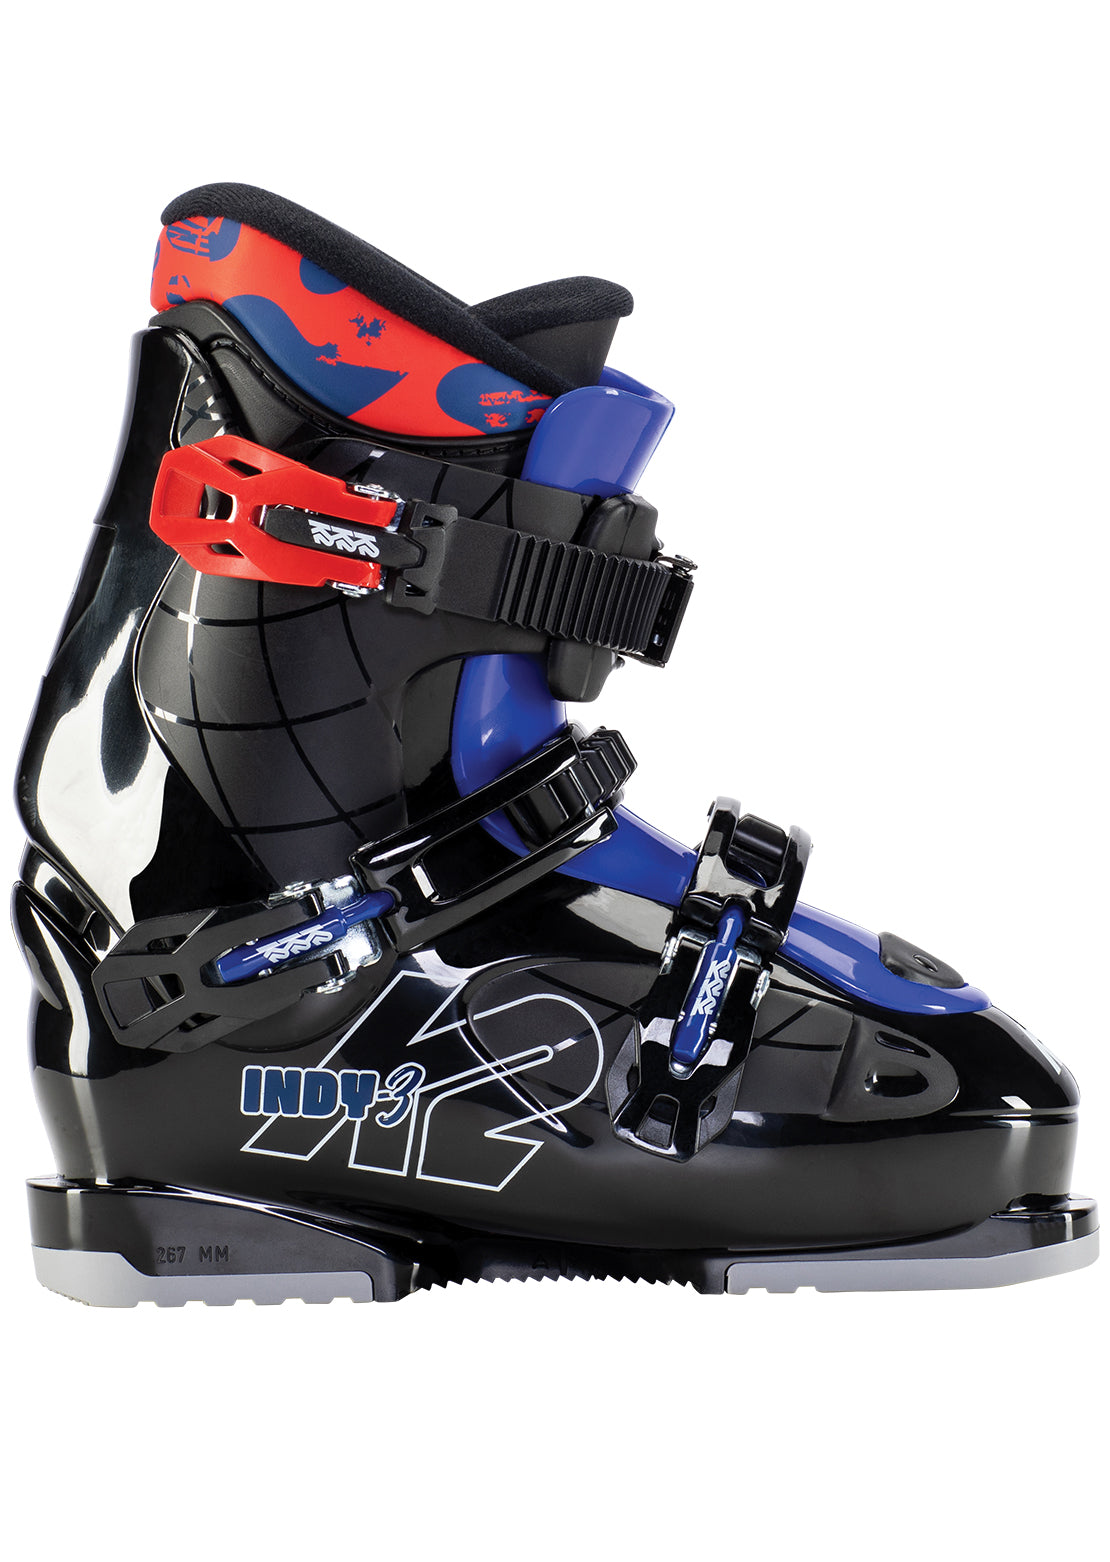 K2 Junior Indy 3 Ski Boots Black/Red